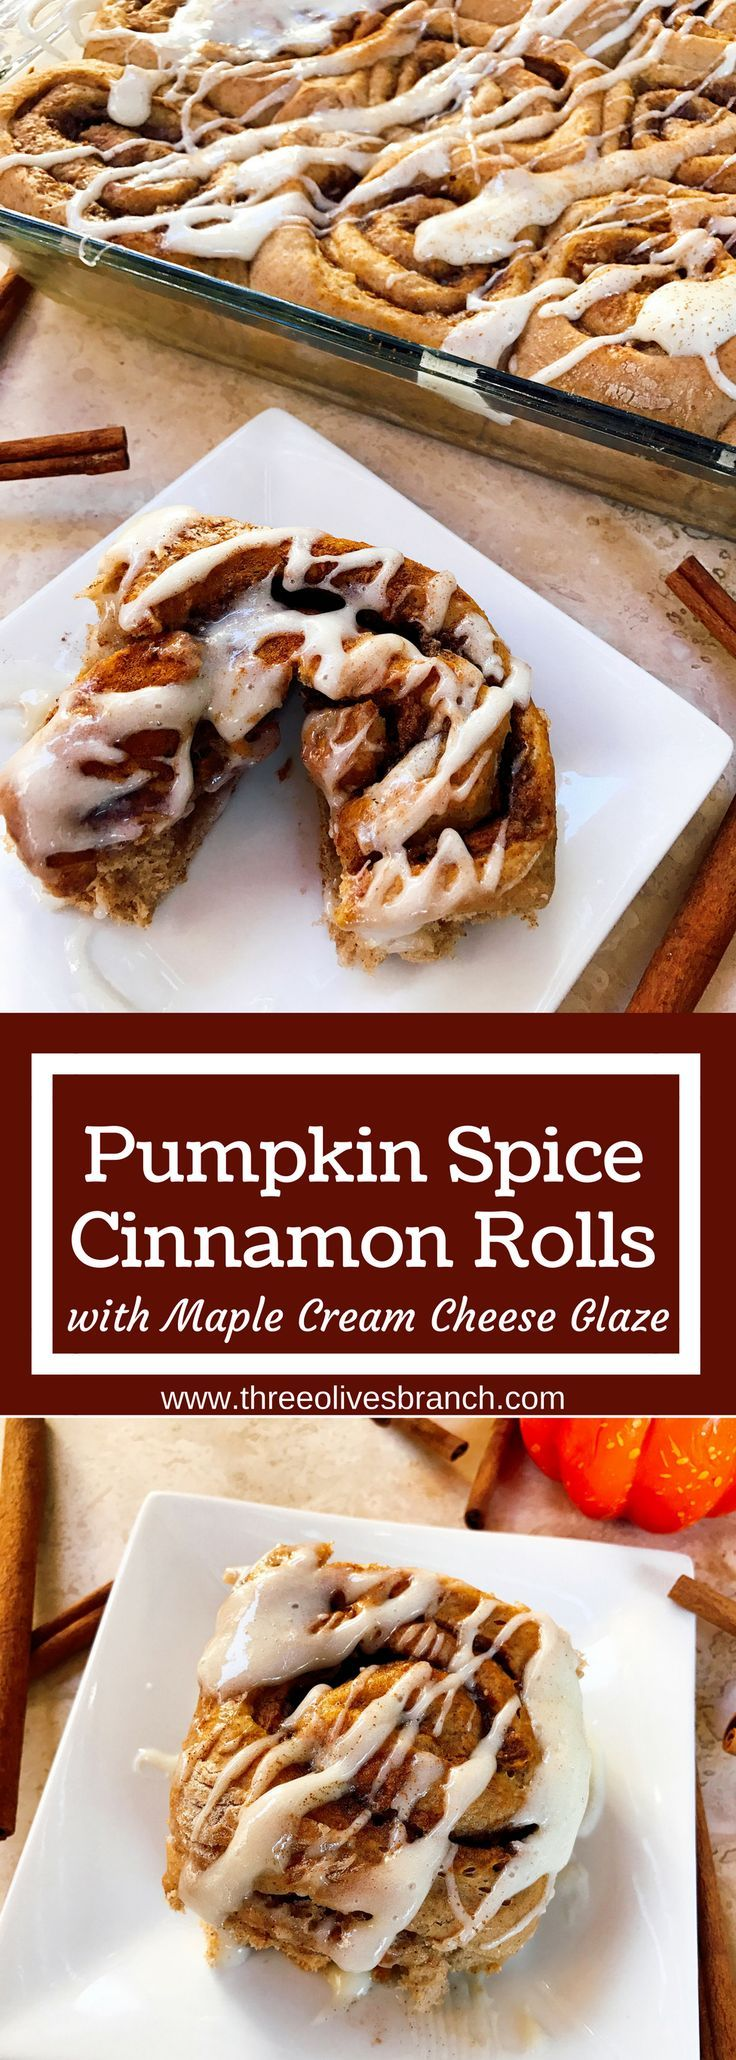 ... Cinnamon Rolls with Maple Cream Cheese Glaze are perfect for breakfast